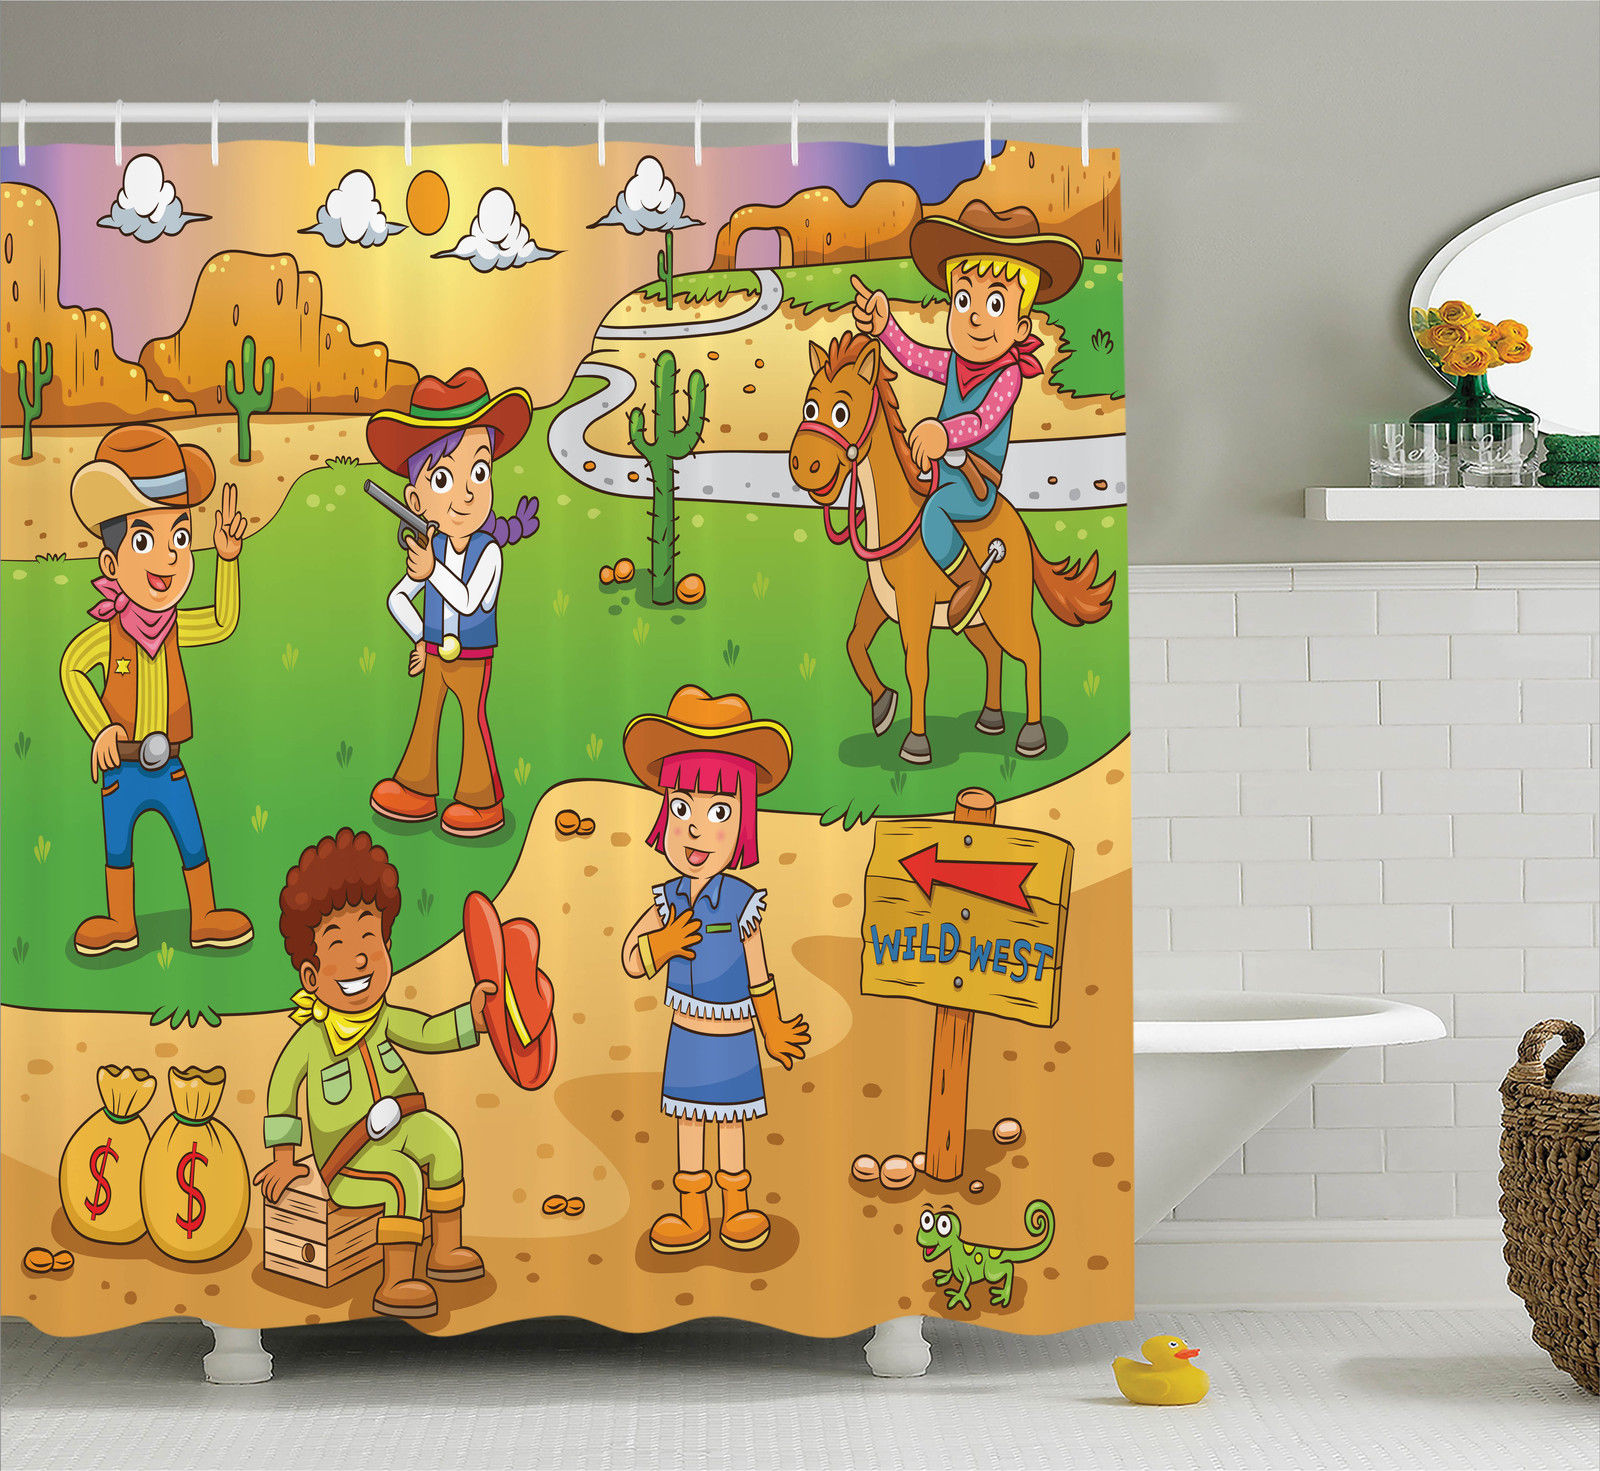 Cartoon Decor Shower Curtain Set, Illustration Of Child Cowboy Cute Wild West Cartoon North America Culture Kids Decor, Bathroom Accessories, 69W X 70L Inches, By Ambesonne